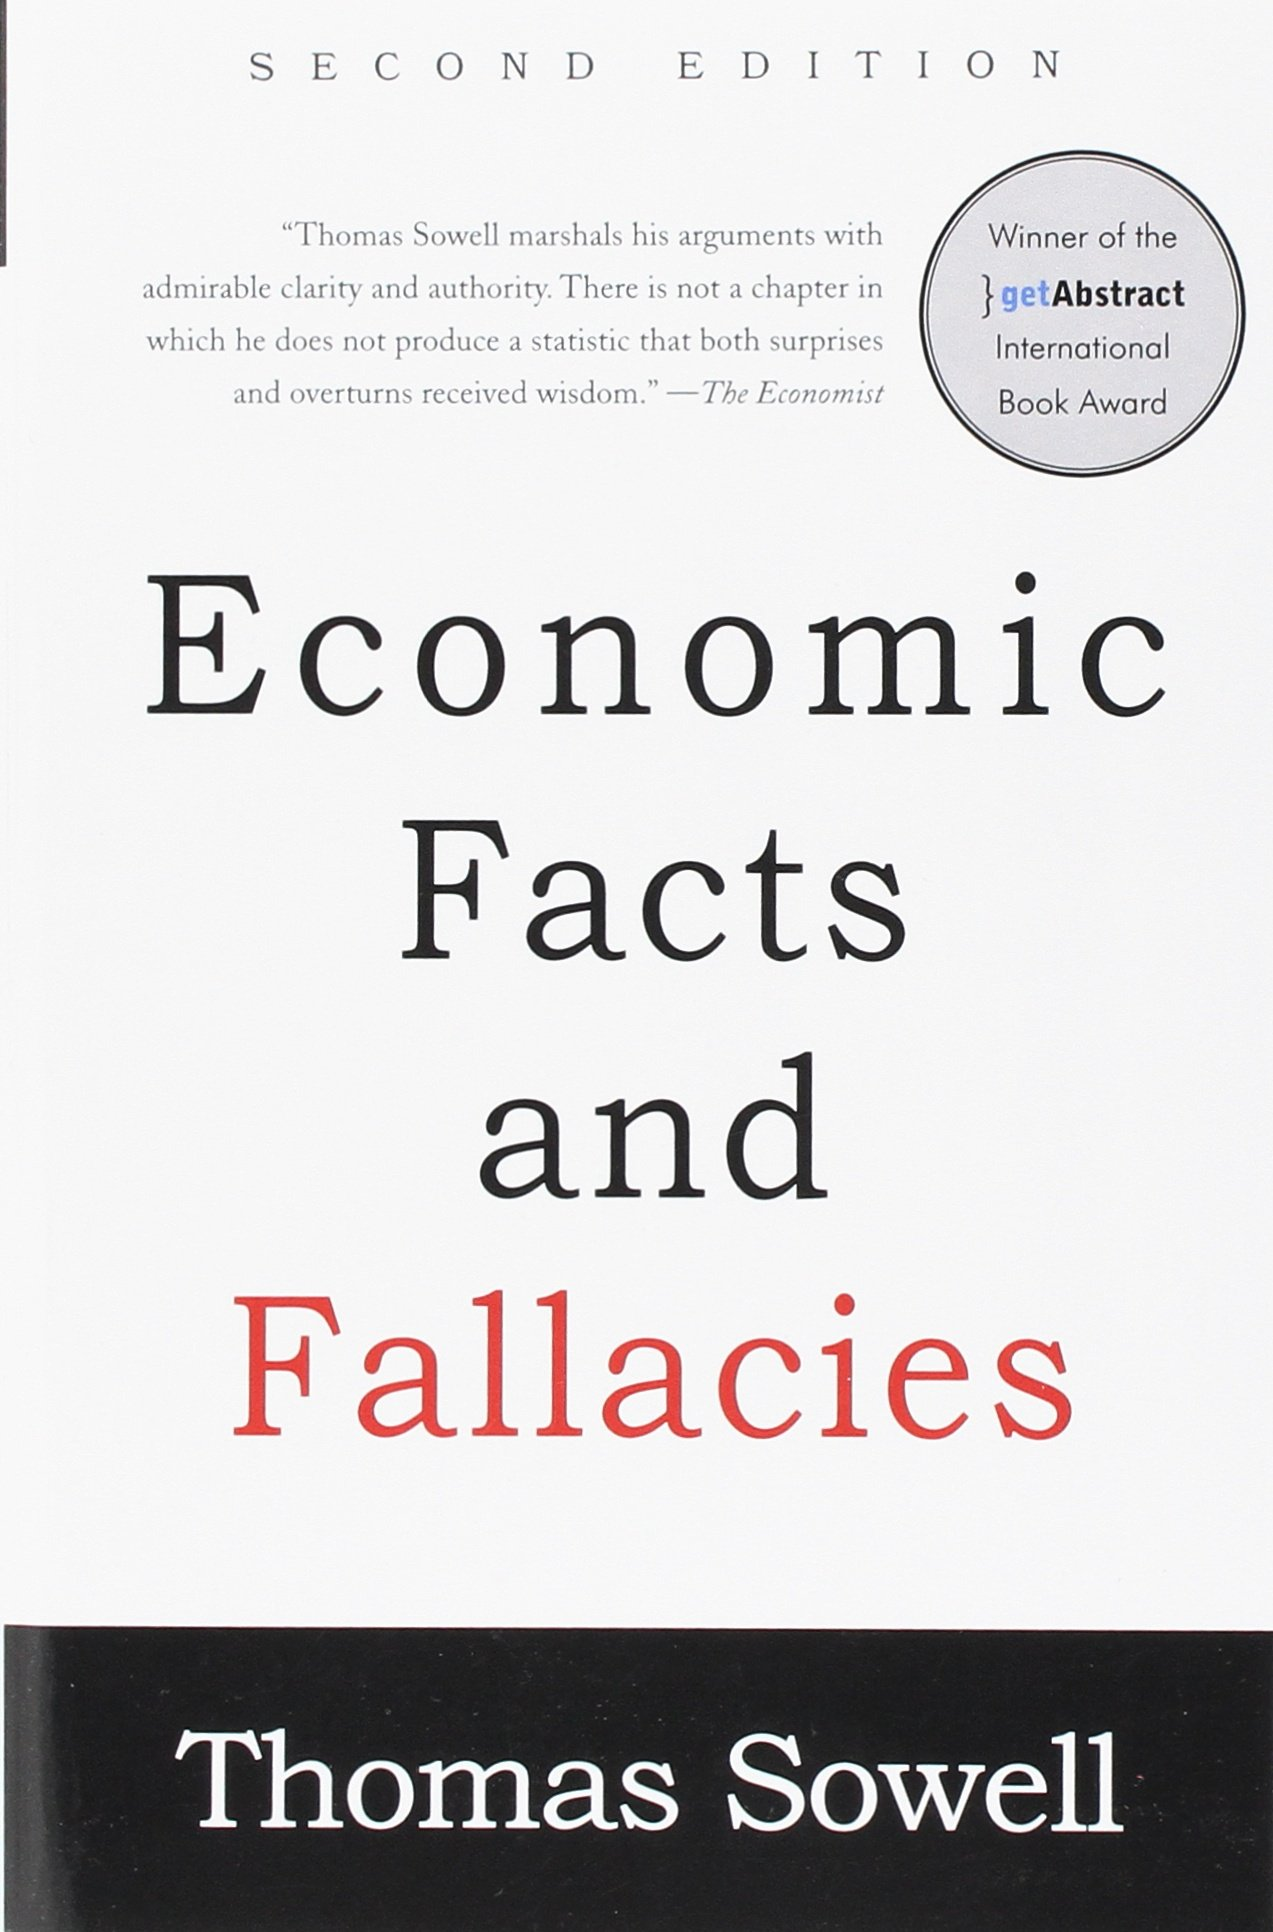 economic facts and fallacies second edition amazon co uk thomas economic facts and fallacies second edition amazon co uk thomas sowell 9780465022038 books